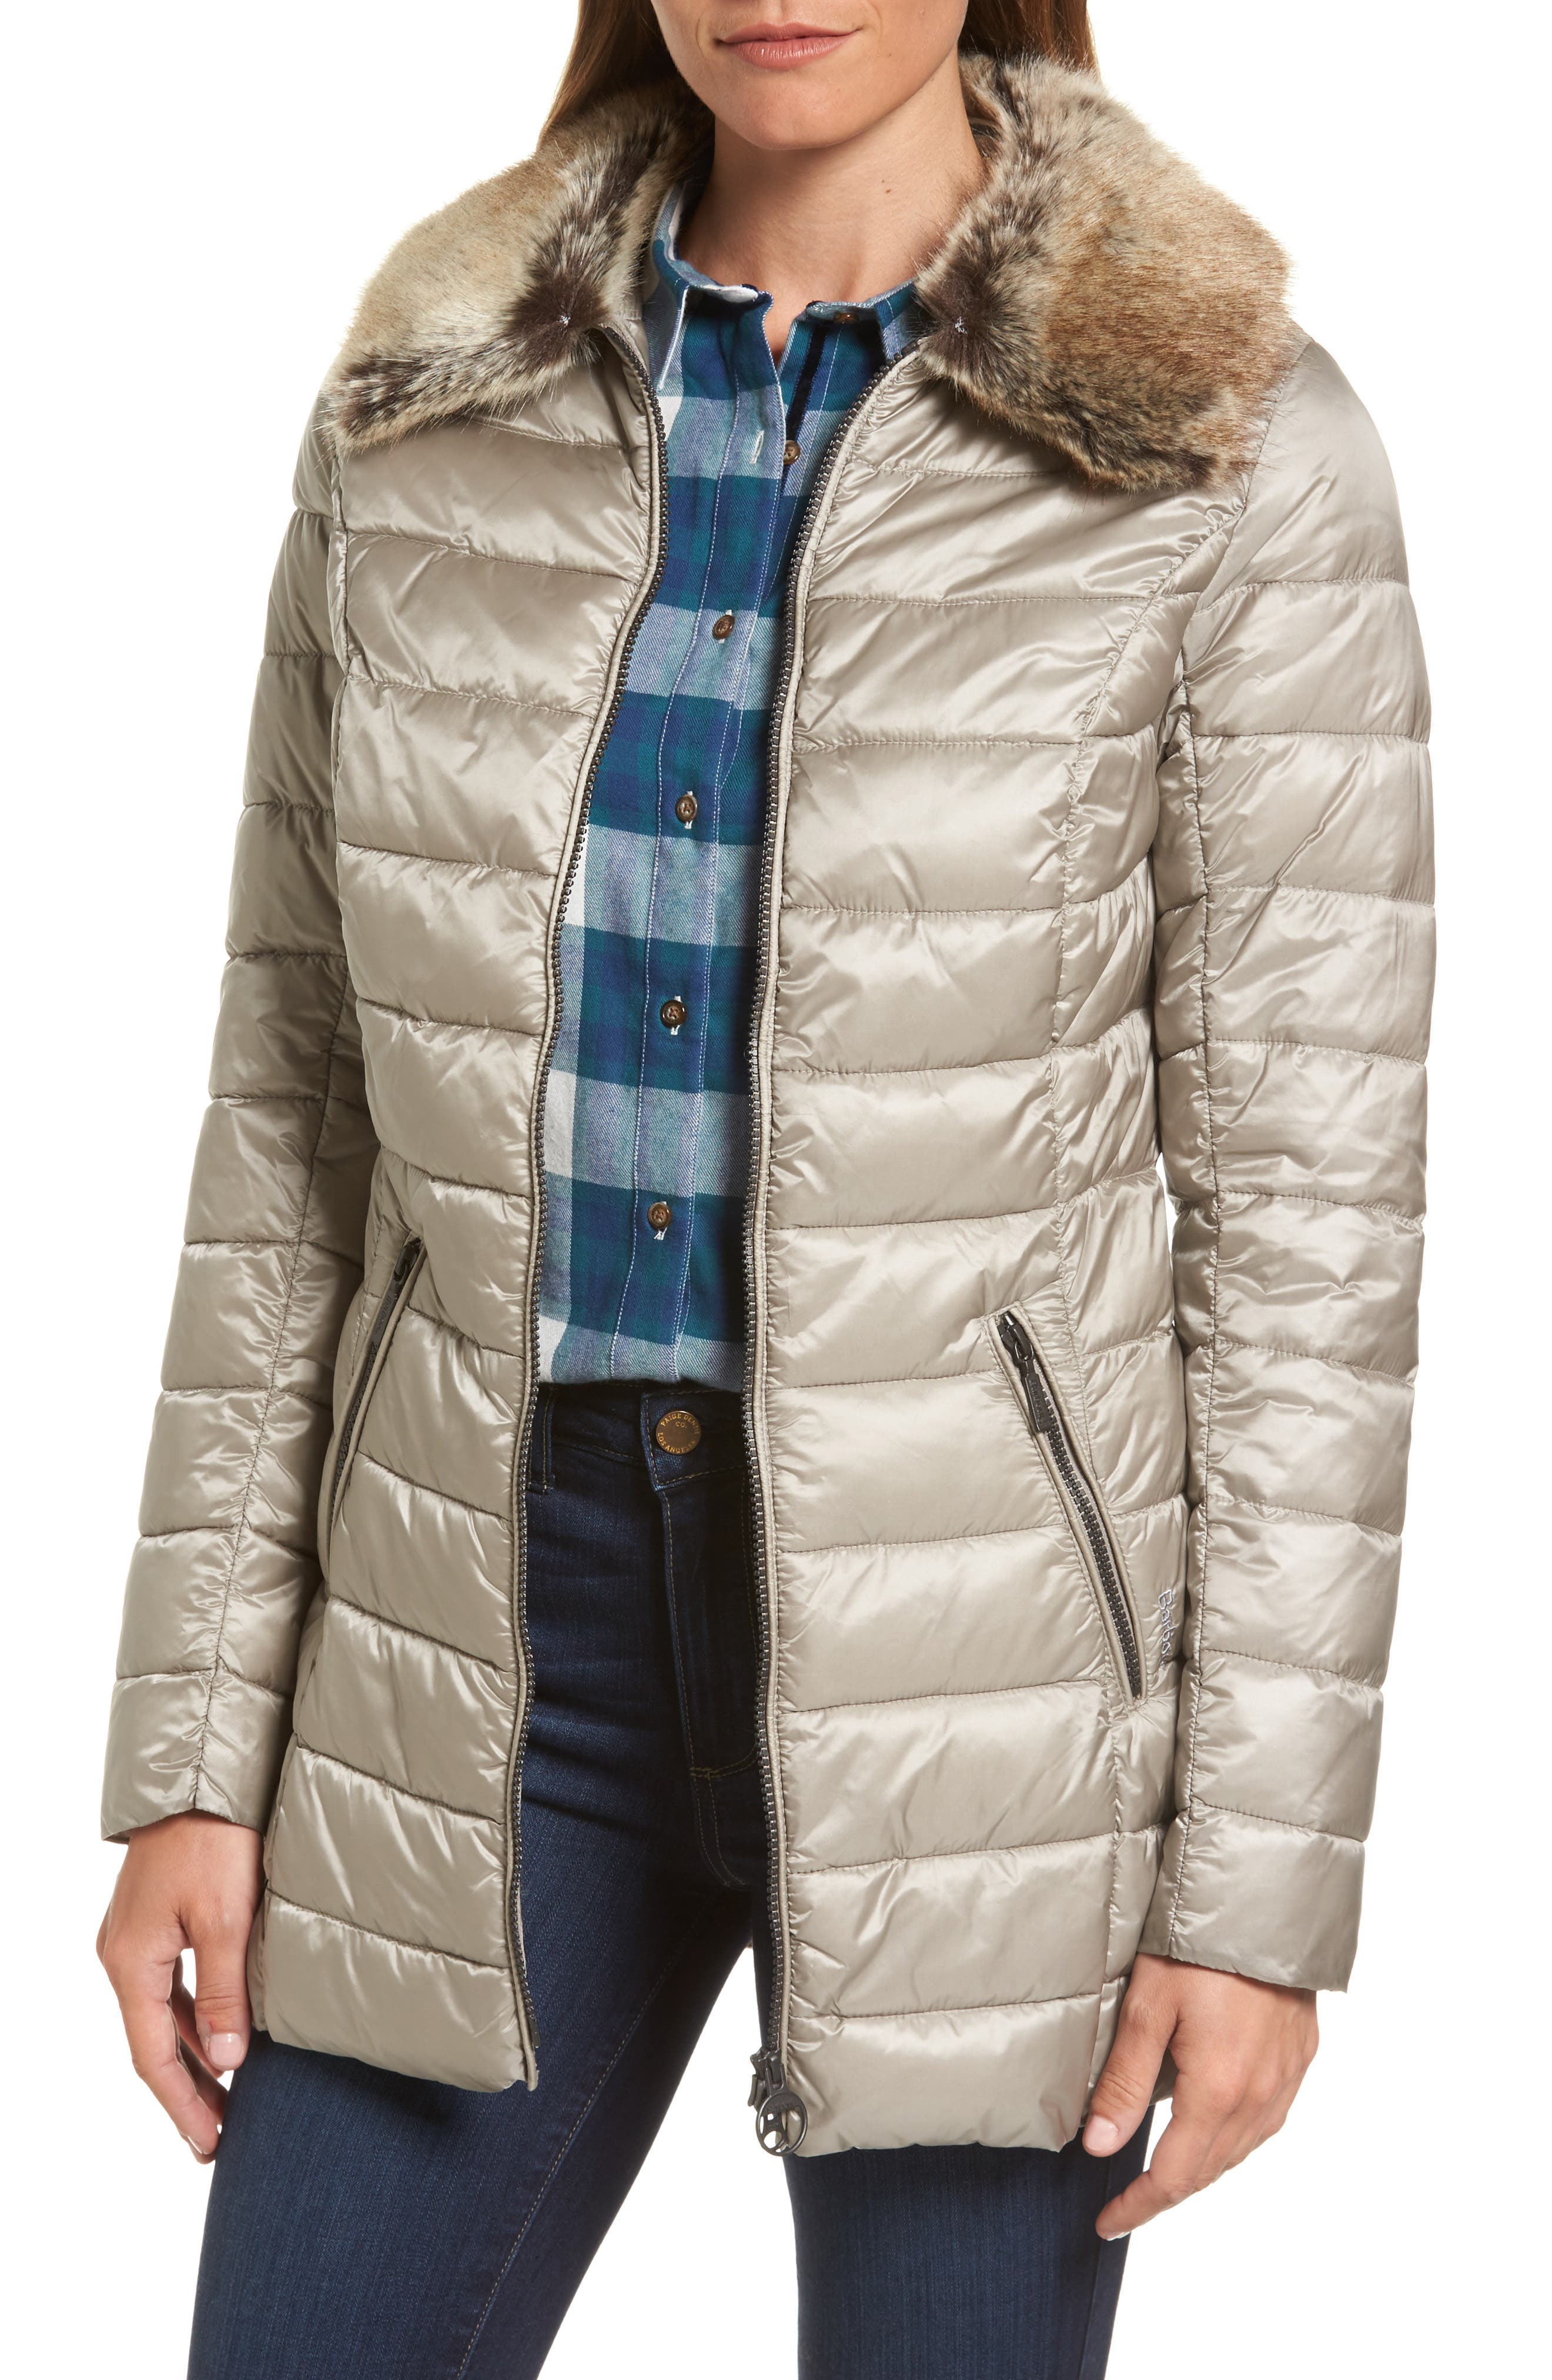 Alternate Image 1 Selected - Barbour Rambleton Water Resistant Quilted Jacket with Faux Fur Collar